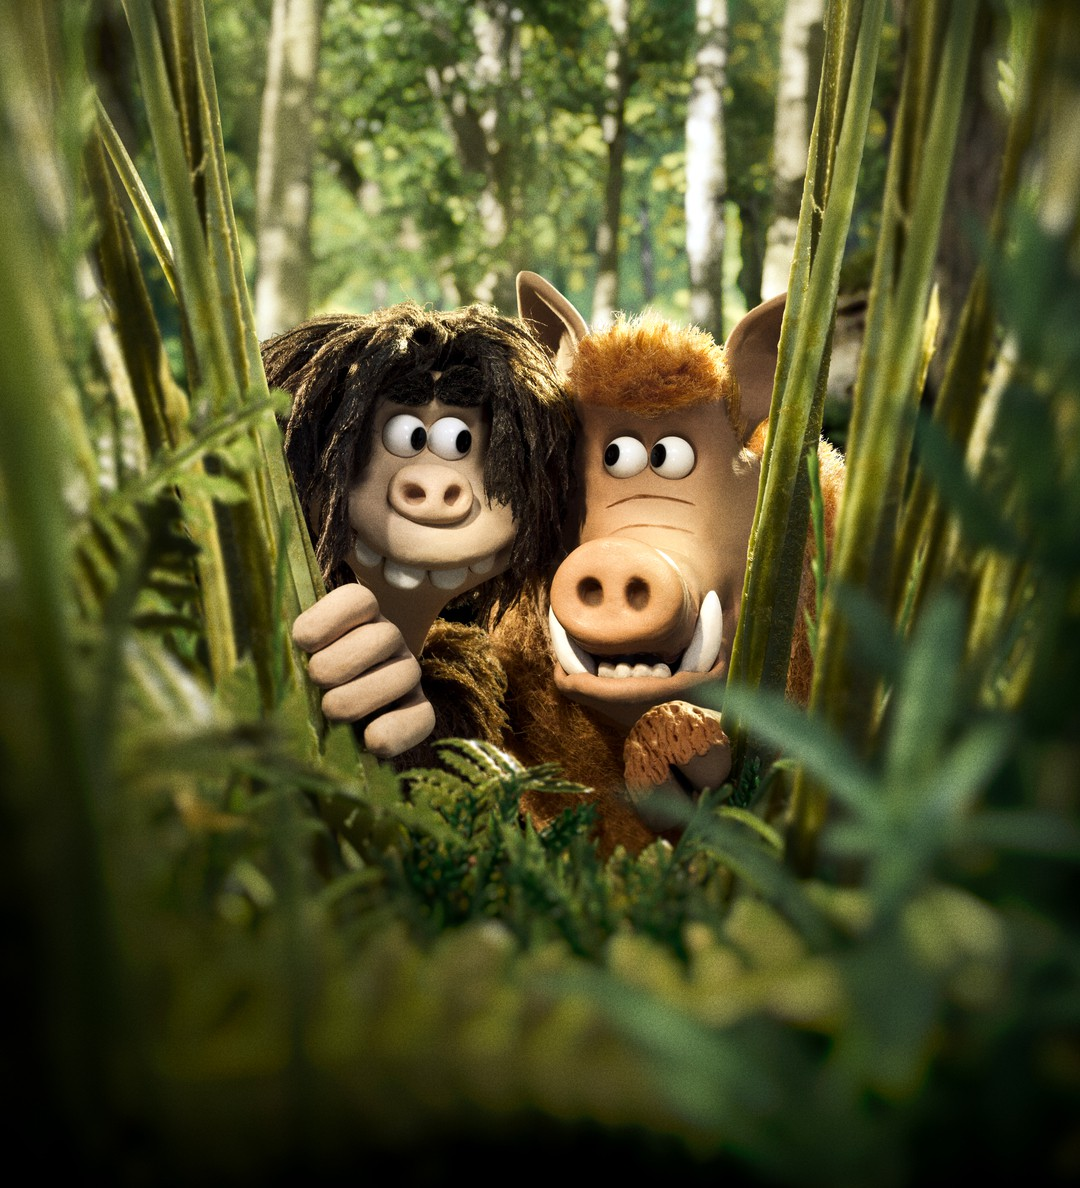 Early Man: Neuer Trailer zum Animations-Highlight - Bild 1 von 16